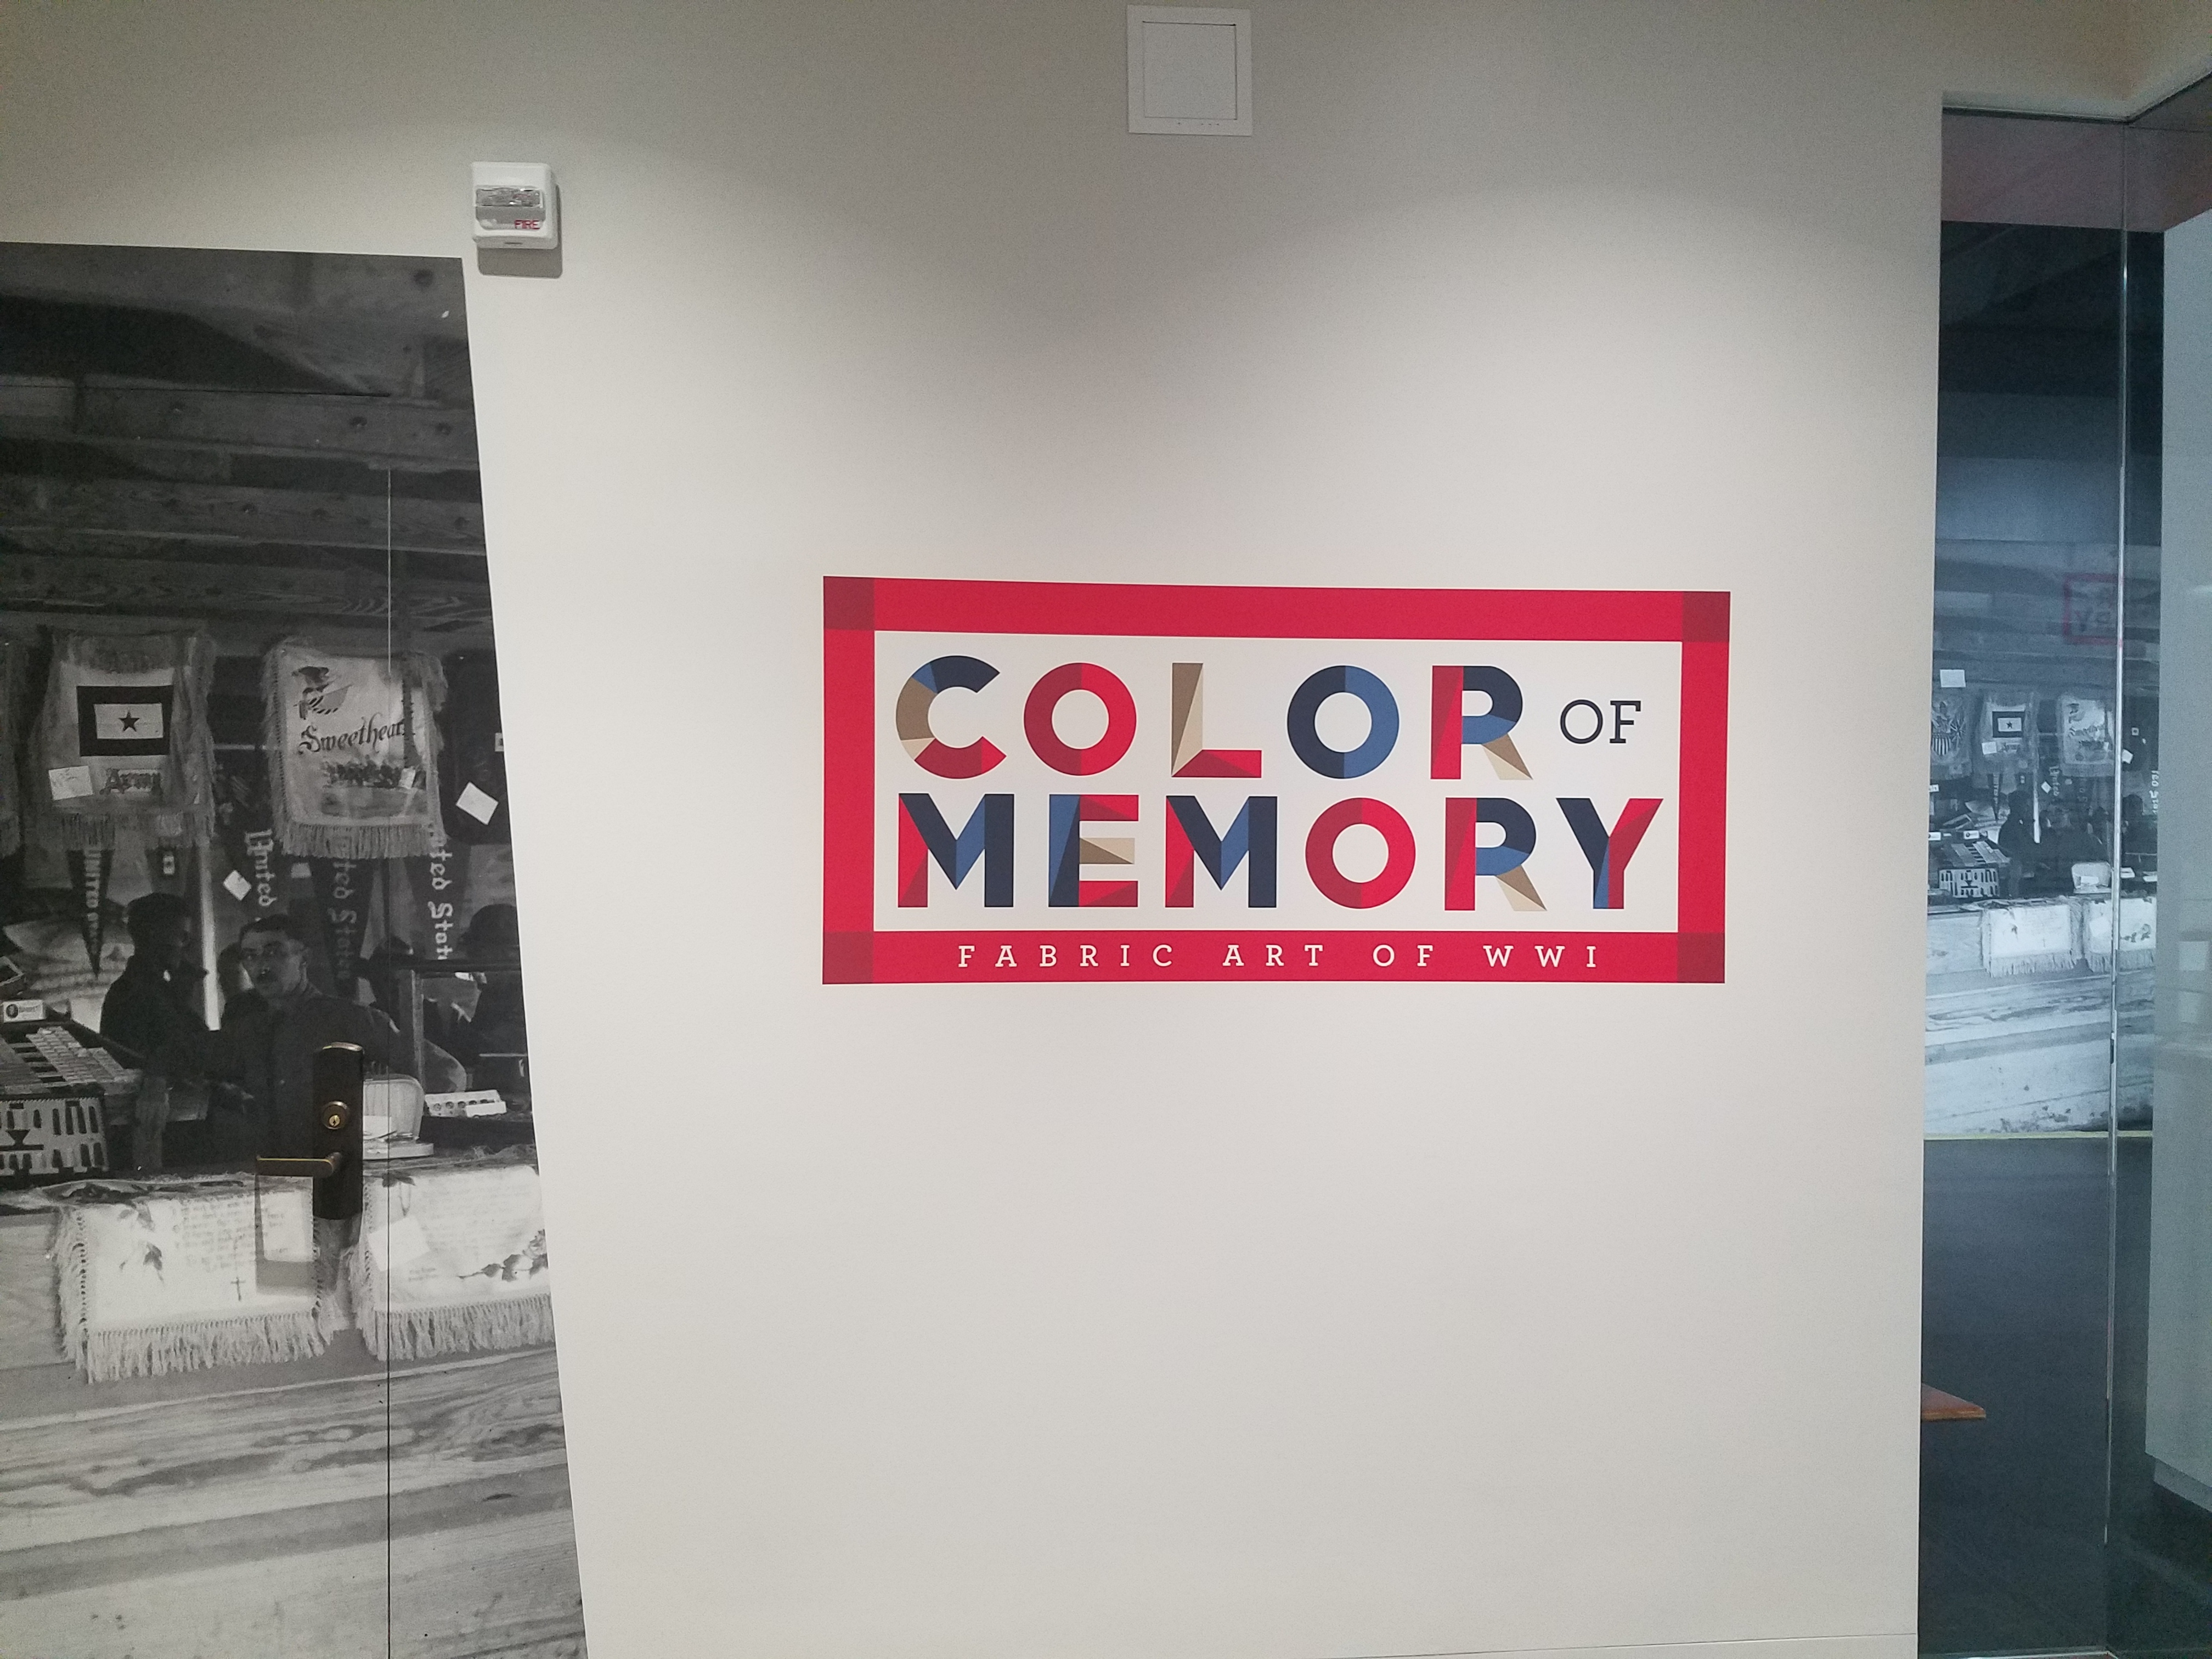 Color of Memory Exhibit at the WWI Museum